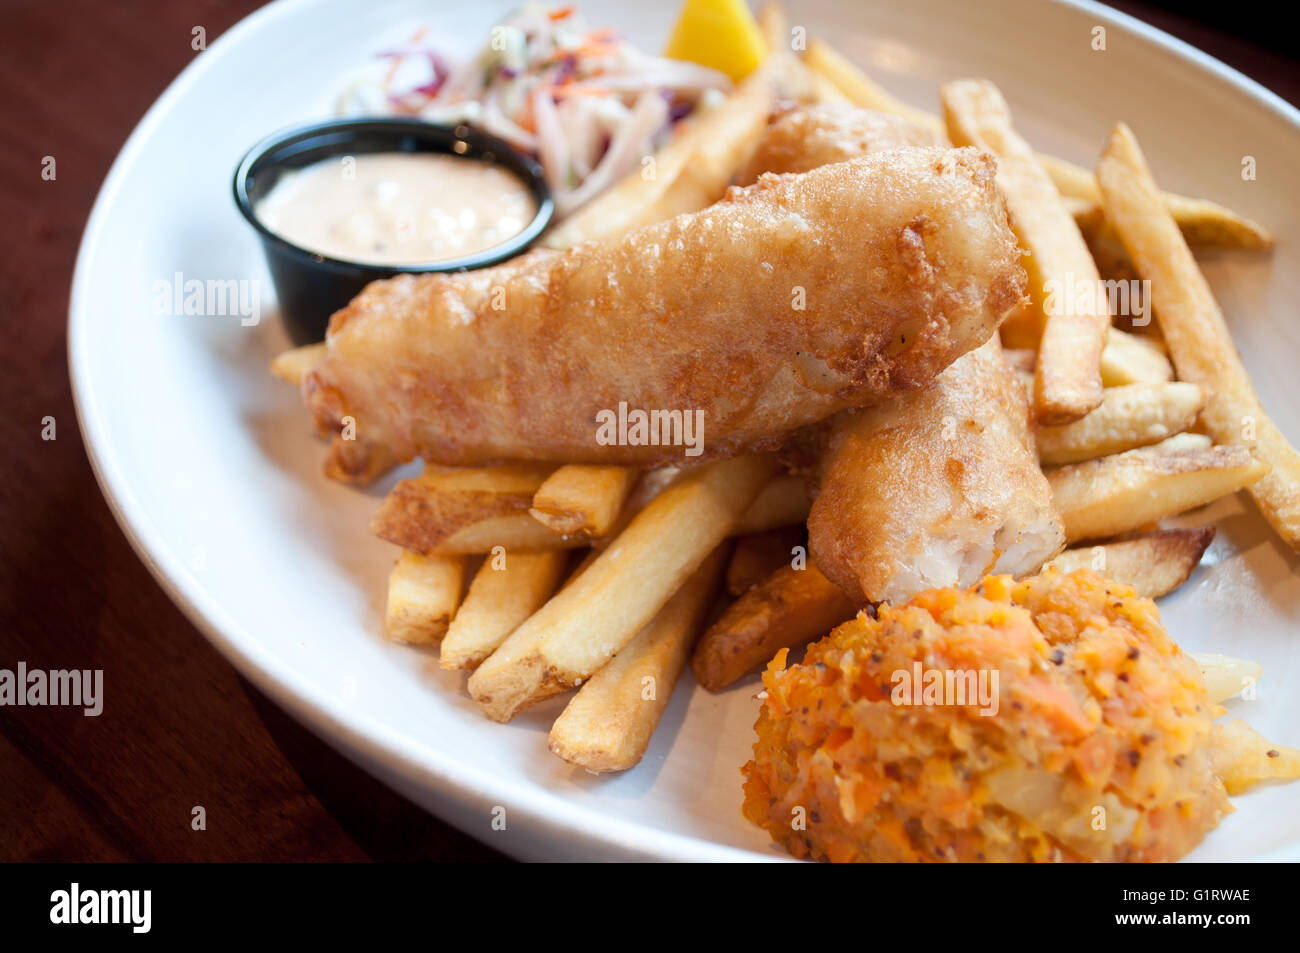 A beautiful prepared fish and chips platter, complete with coleslaw, clapshot and homemade tartar sauce. - Stock Image